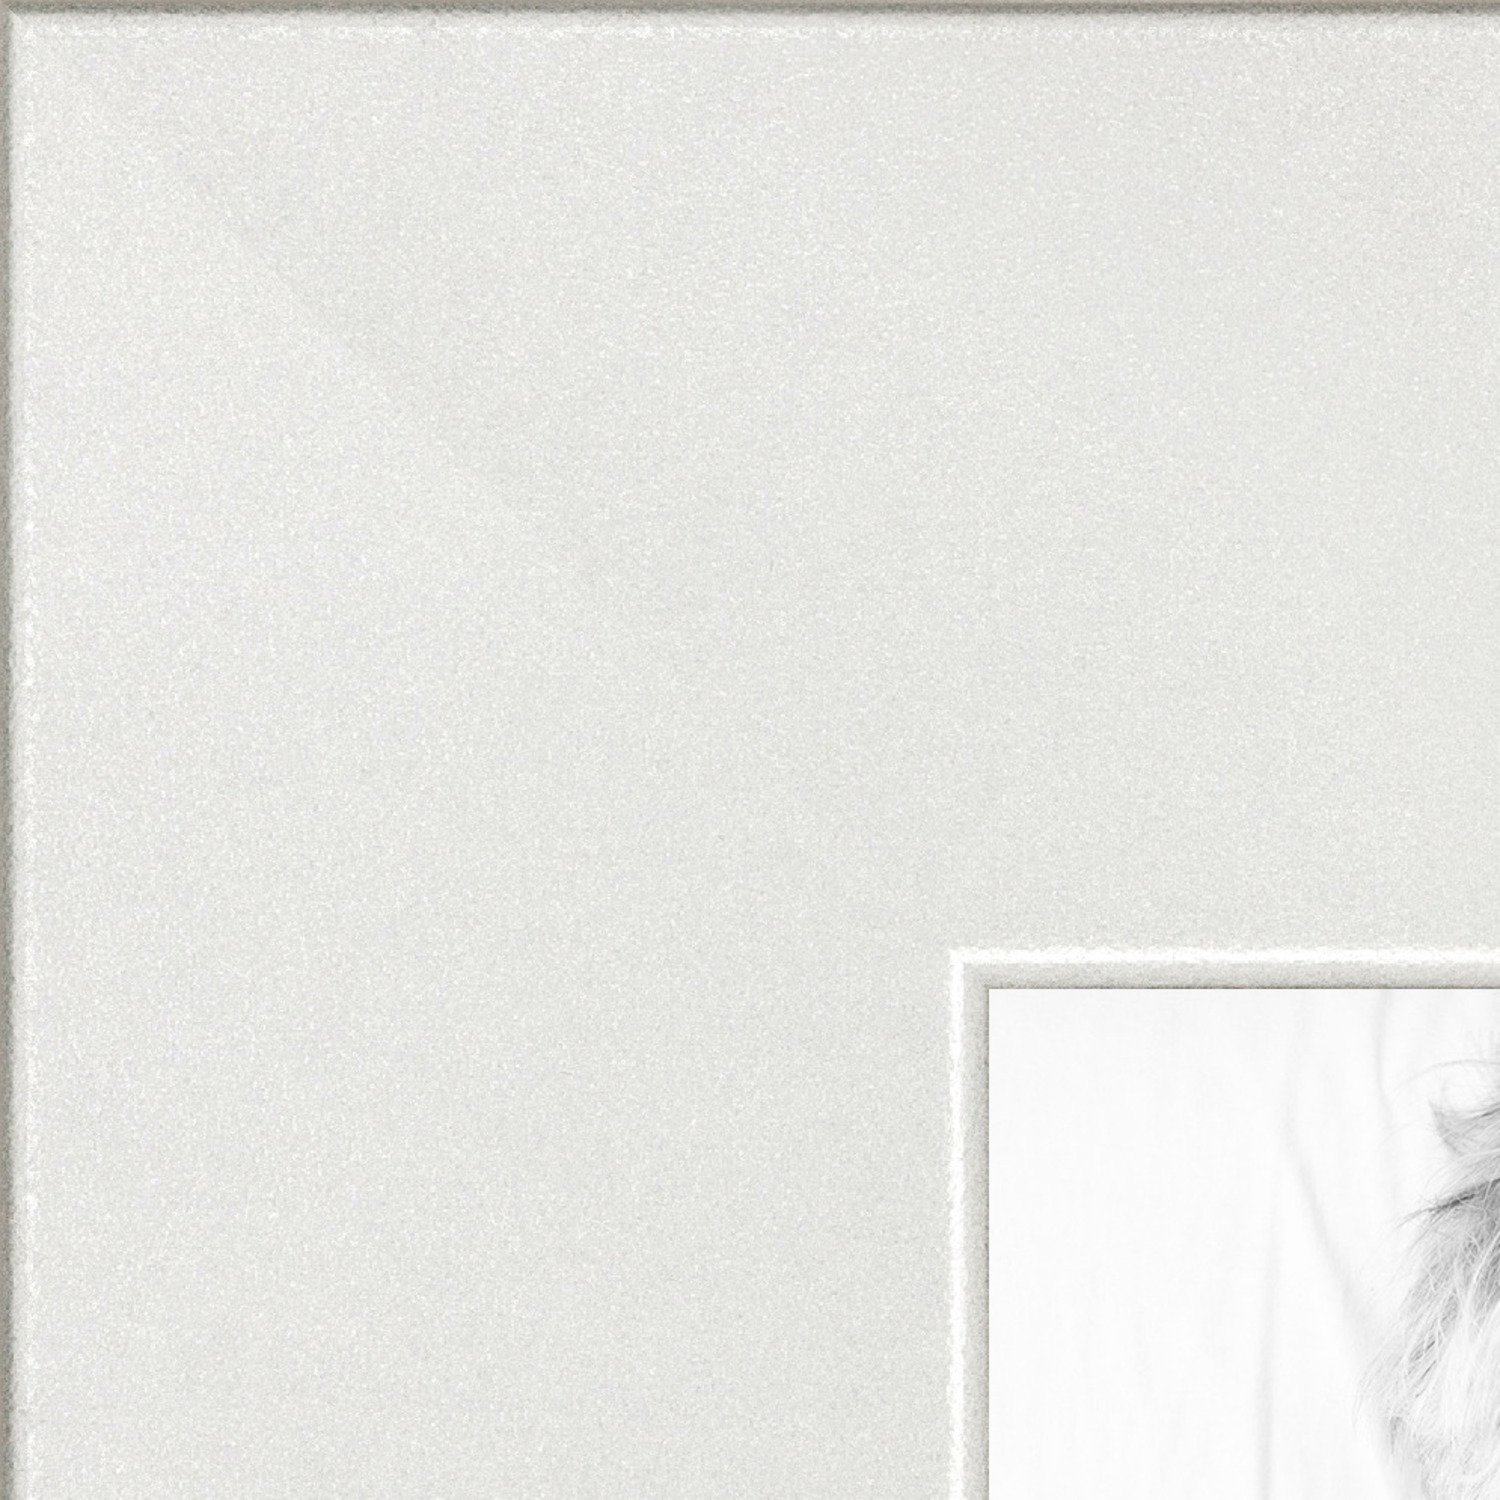 ArtToFrames 24x24 inch Modern White Frame Picture Frame, WOMFRBW74074-24x24